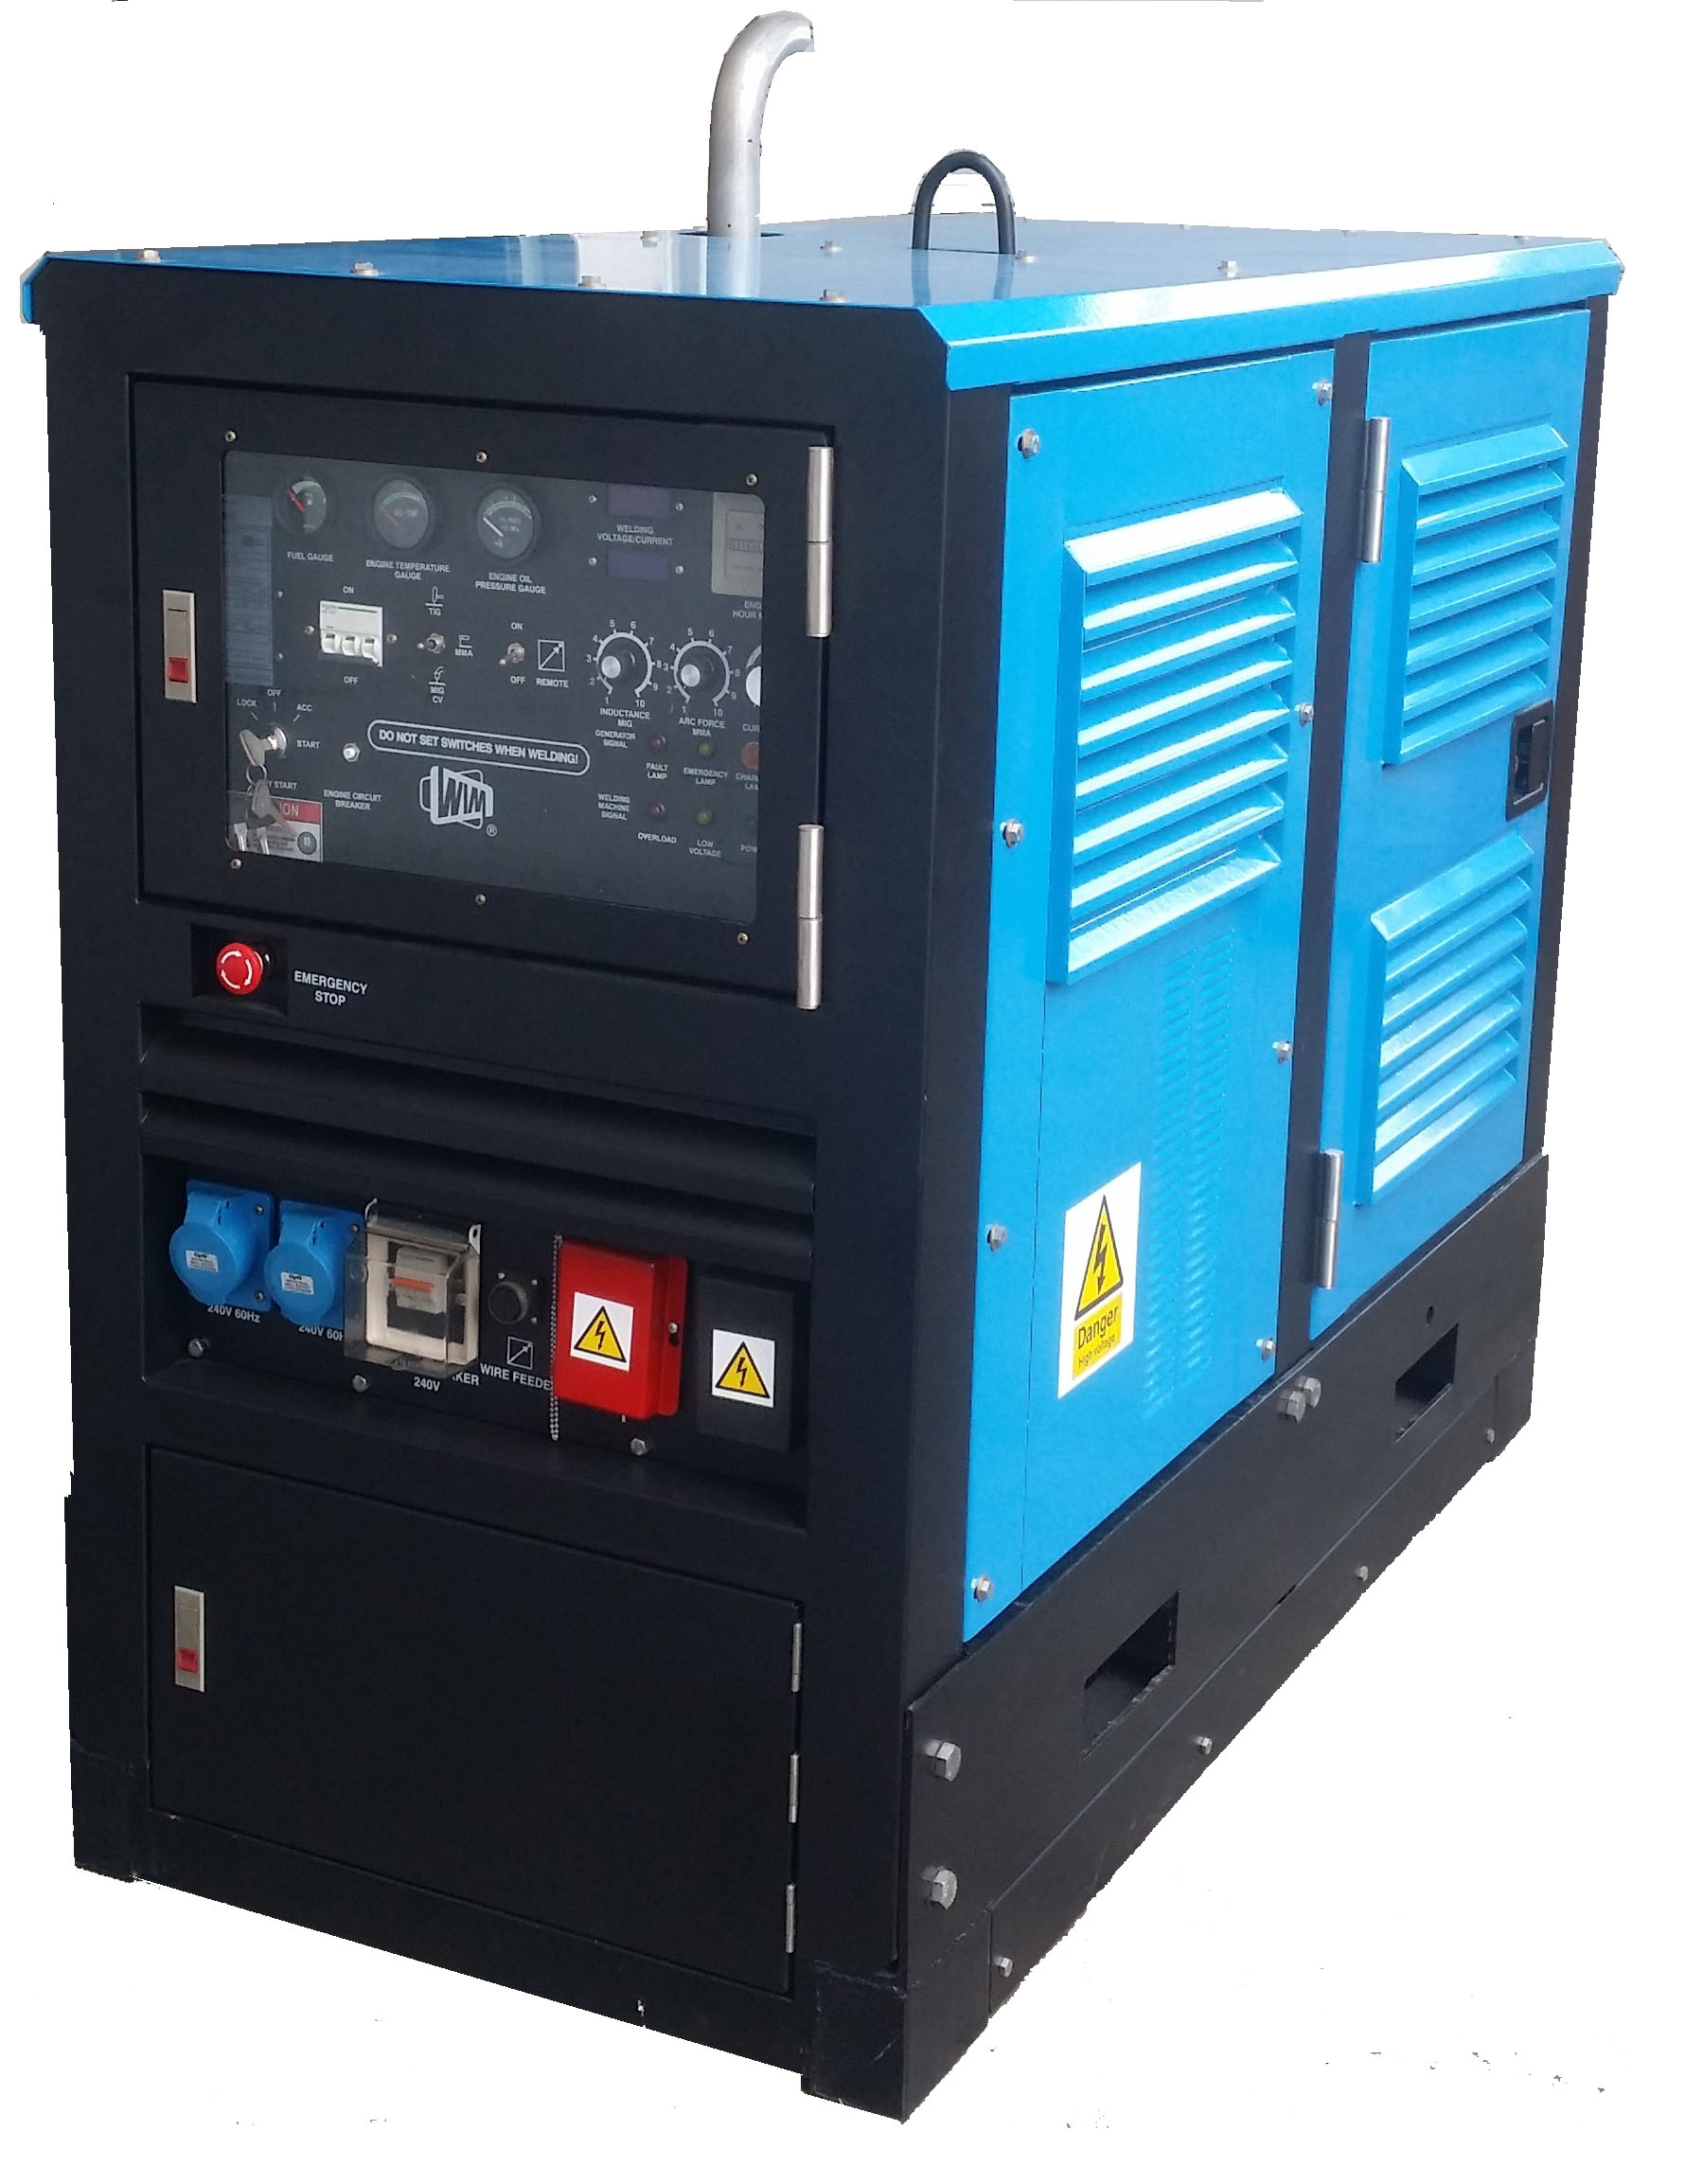 Wim Welding Industries Malaysia Sdn Bhd Total Solutions Generator Circuit Diagram Alphaweld 500d Is The Most Rugged And Reliable Diesel Machine That We Had Ever Built For Heavy Industrial Use Every Component In This